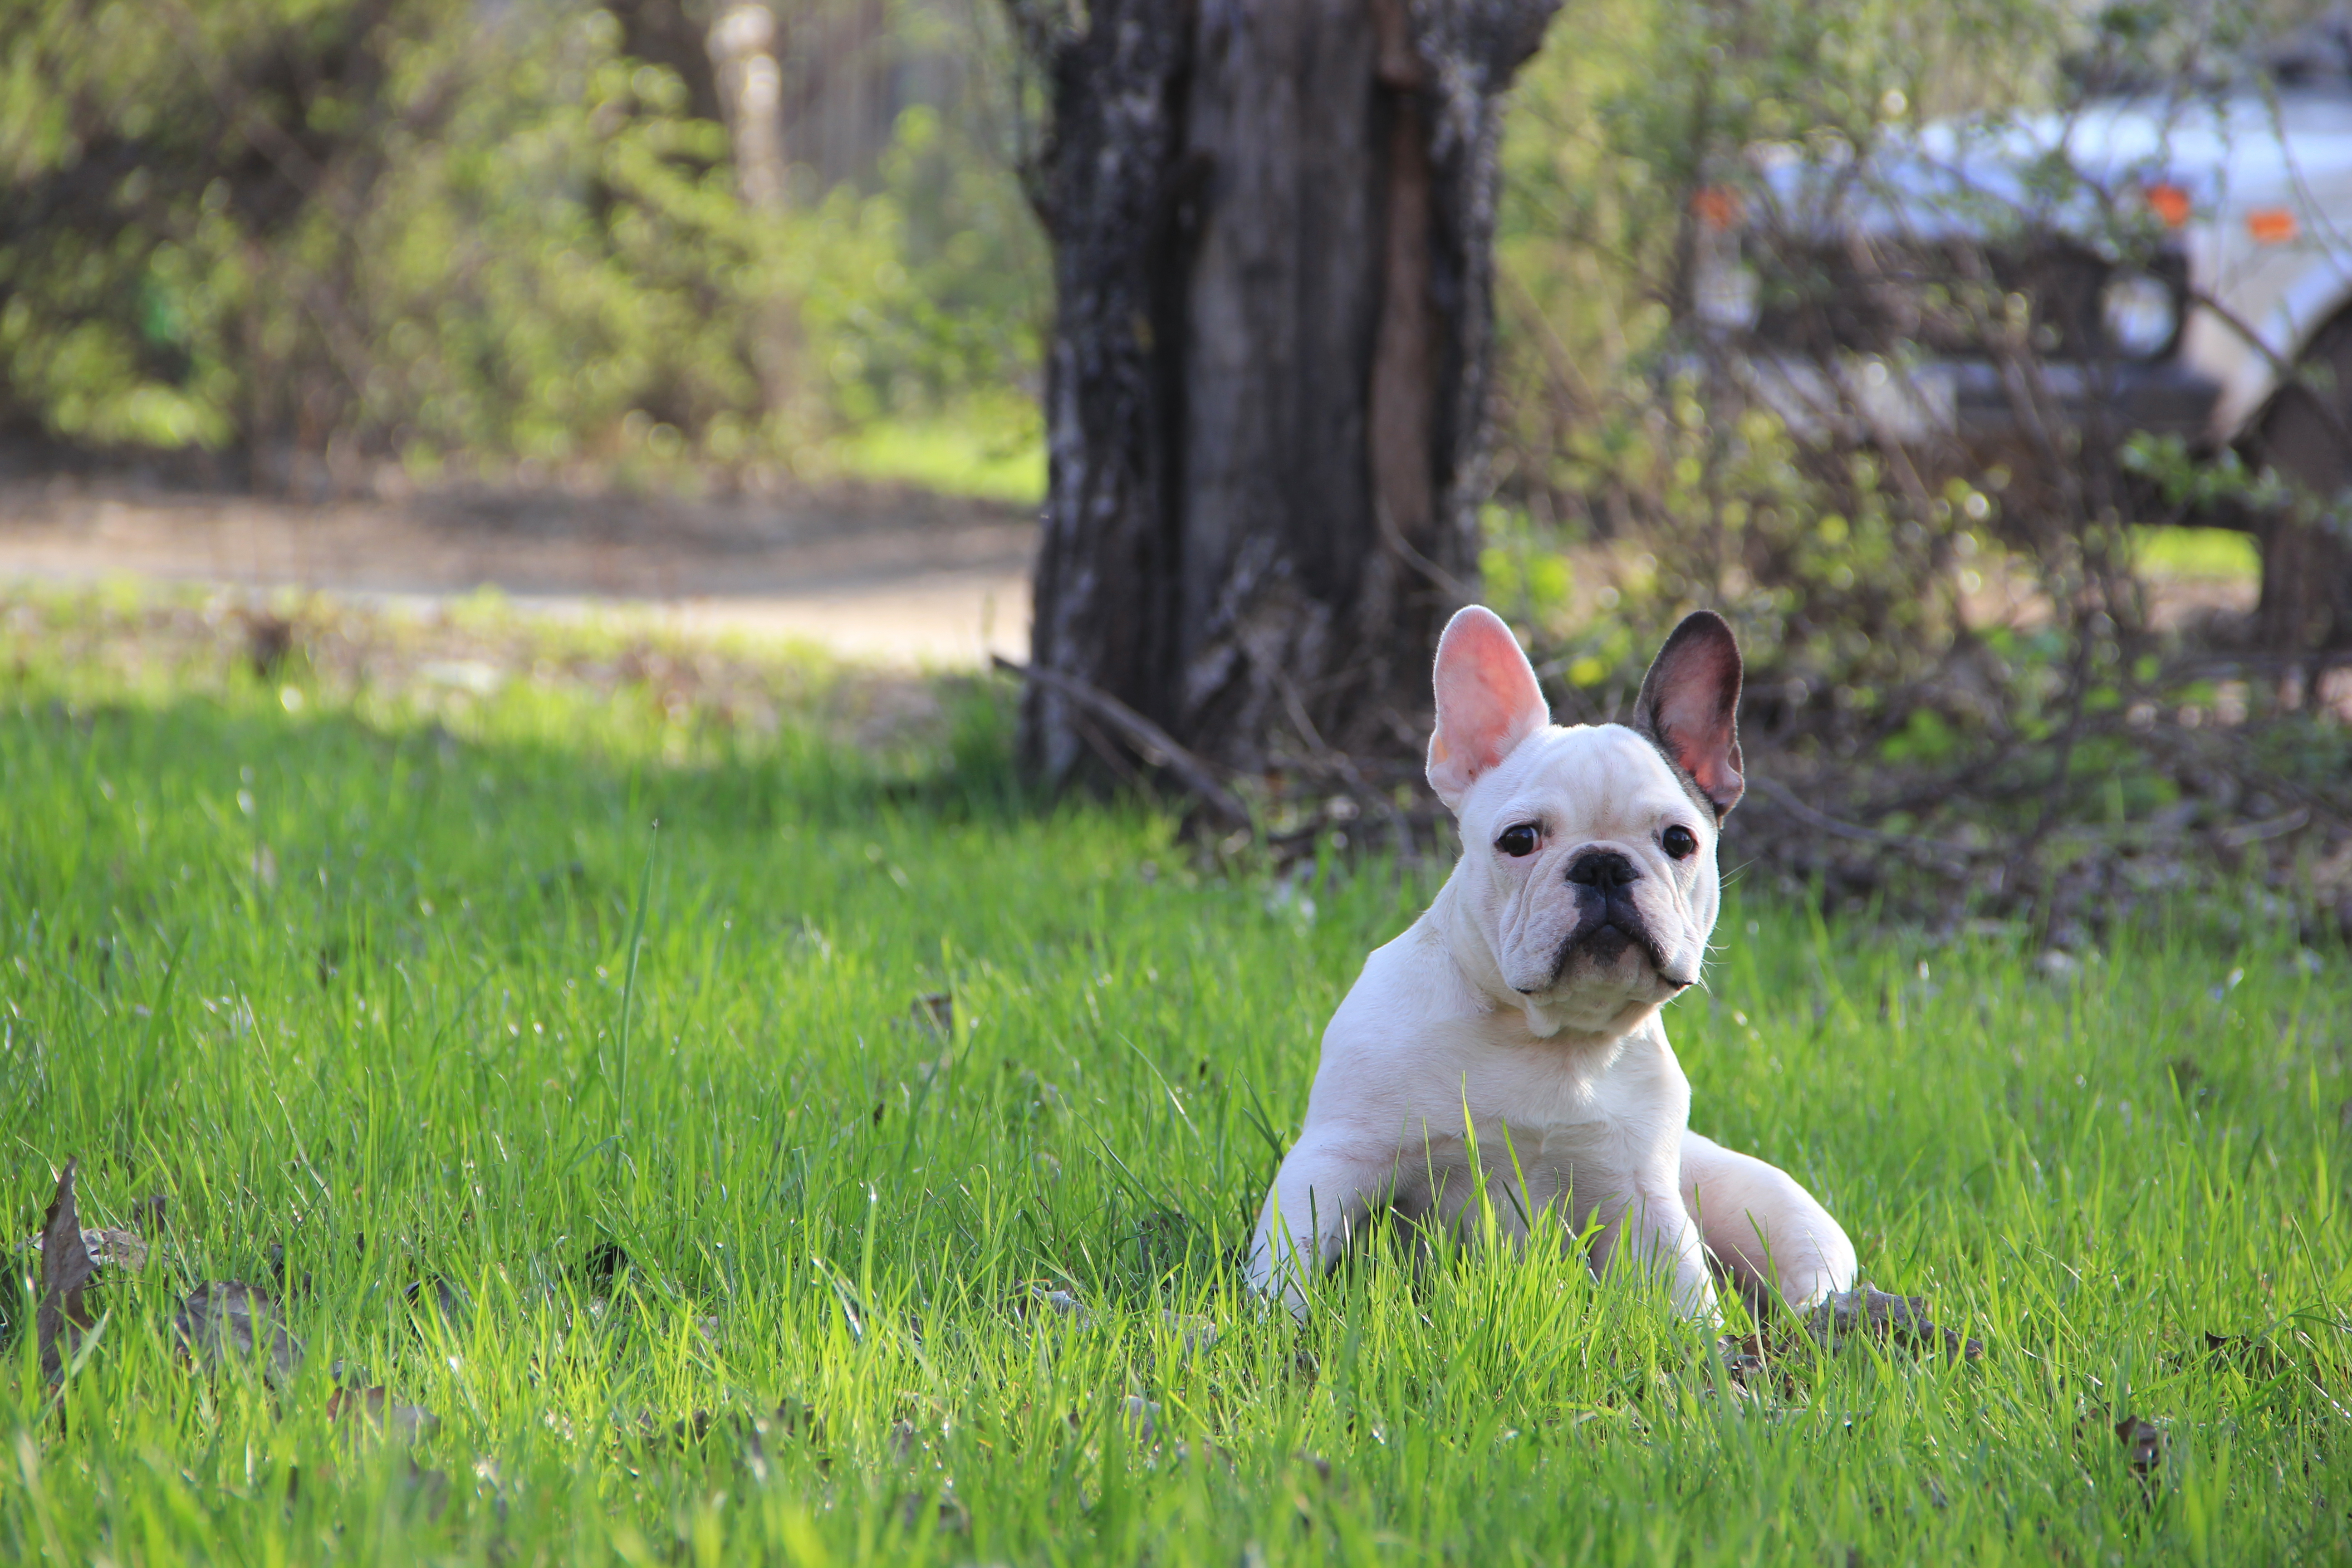 153481 download wallpaper Animals, French Bulldog, Puppy, Grass screensavers and pictures for free